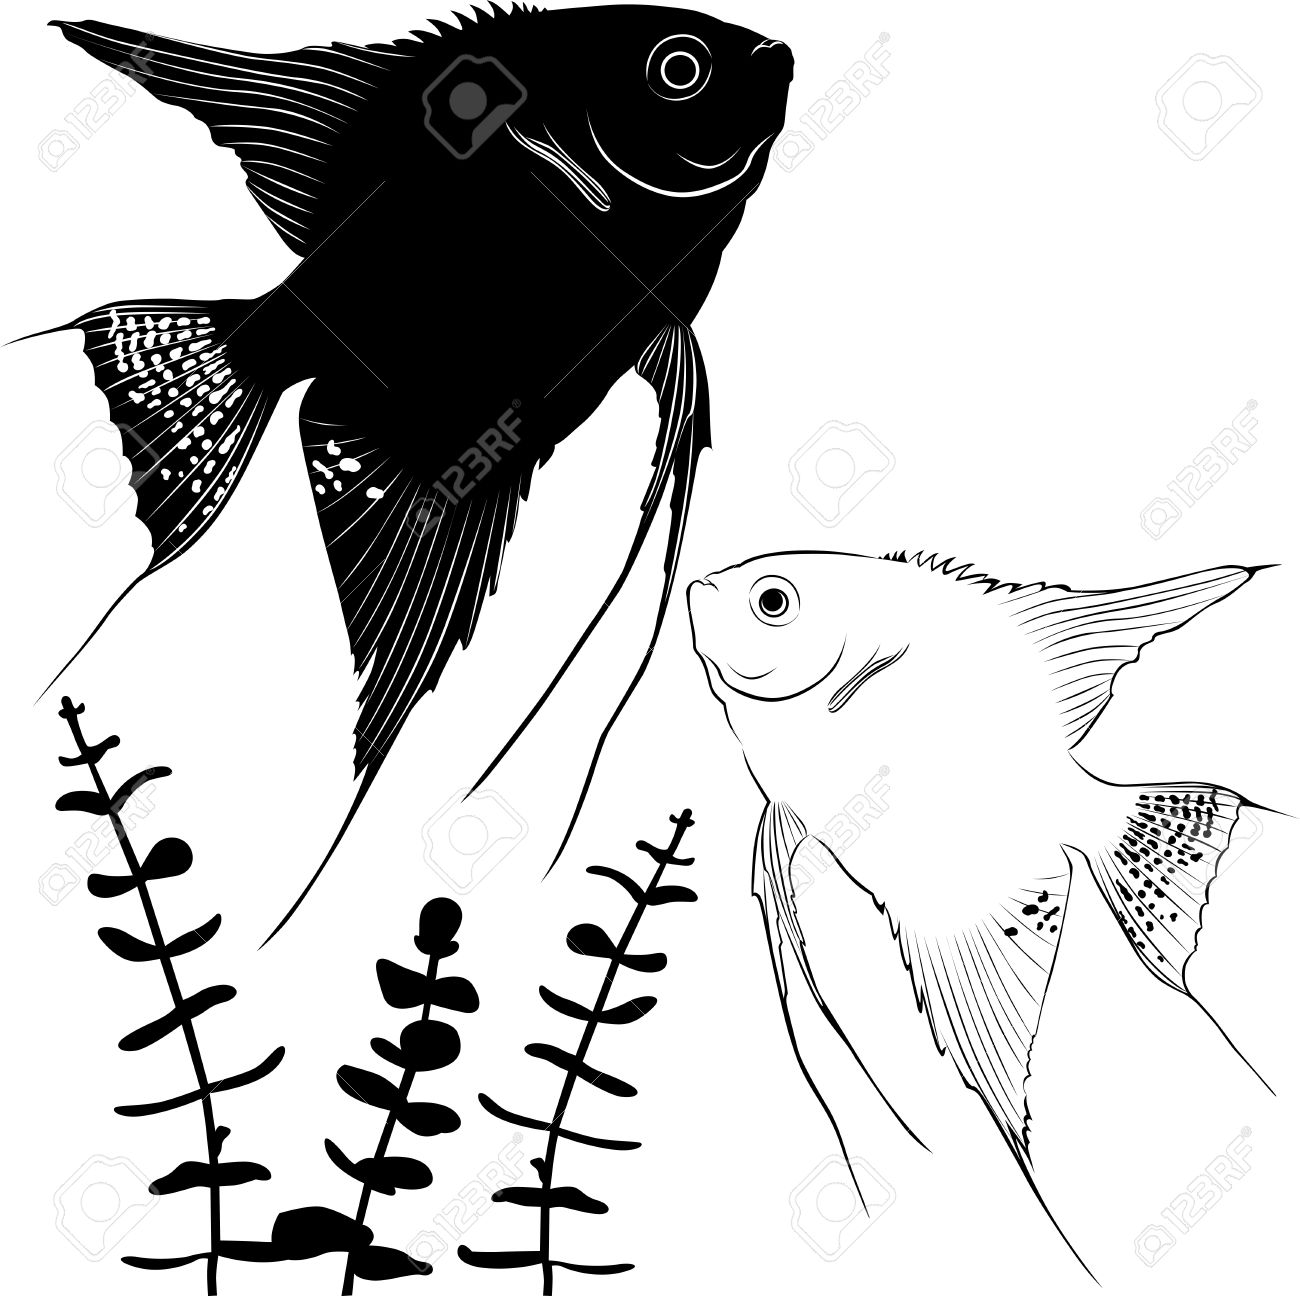 Angelfish Silhouette Ichthyology Illustration Royalty Free.